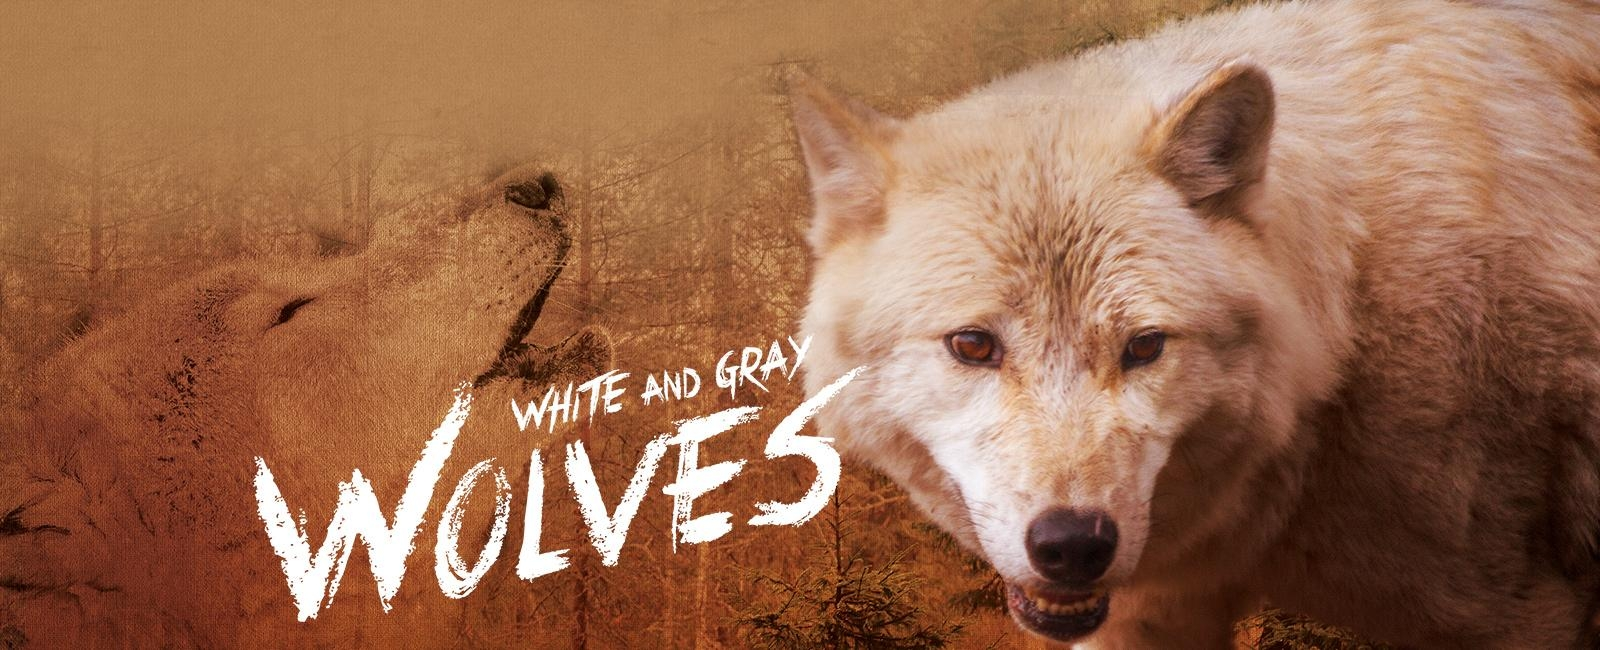 White and Gray Wolves